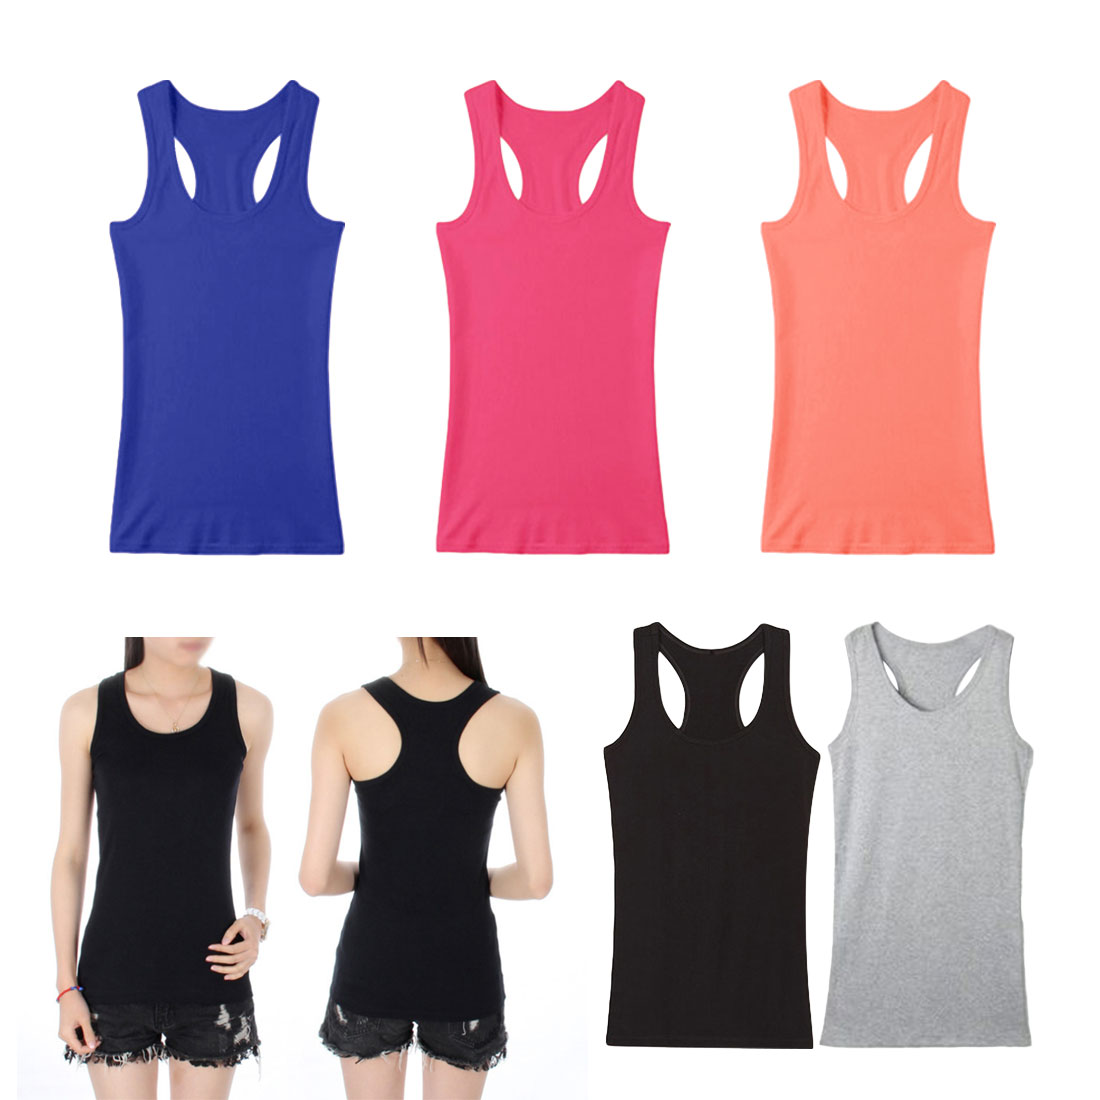 Image 3 - Cotton Fabrics Women Tank Top Comfortable Breathable Sport Vest Female Slim Hem Camisole Casual Basic Style Sleeveless Tops Tee-in Tank Tops from Women's Clothing